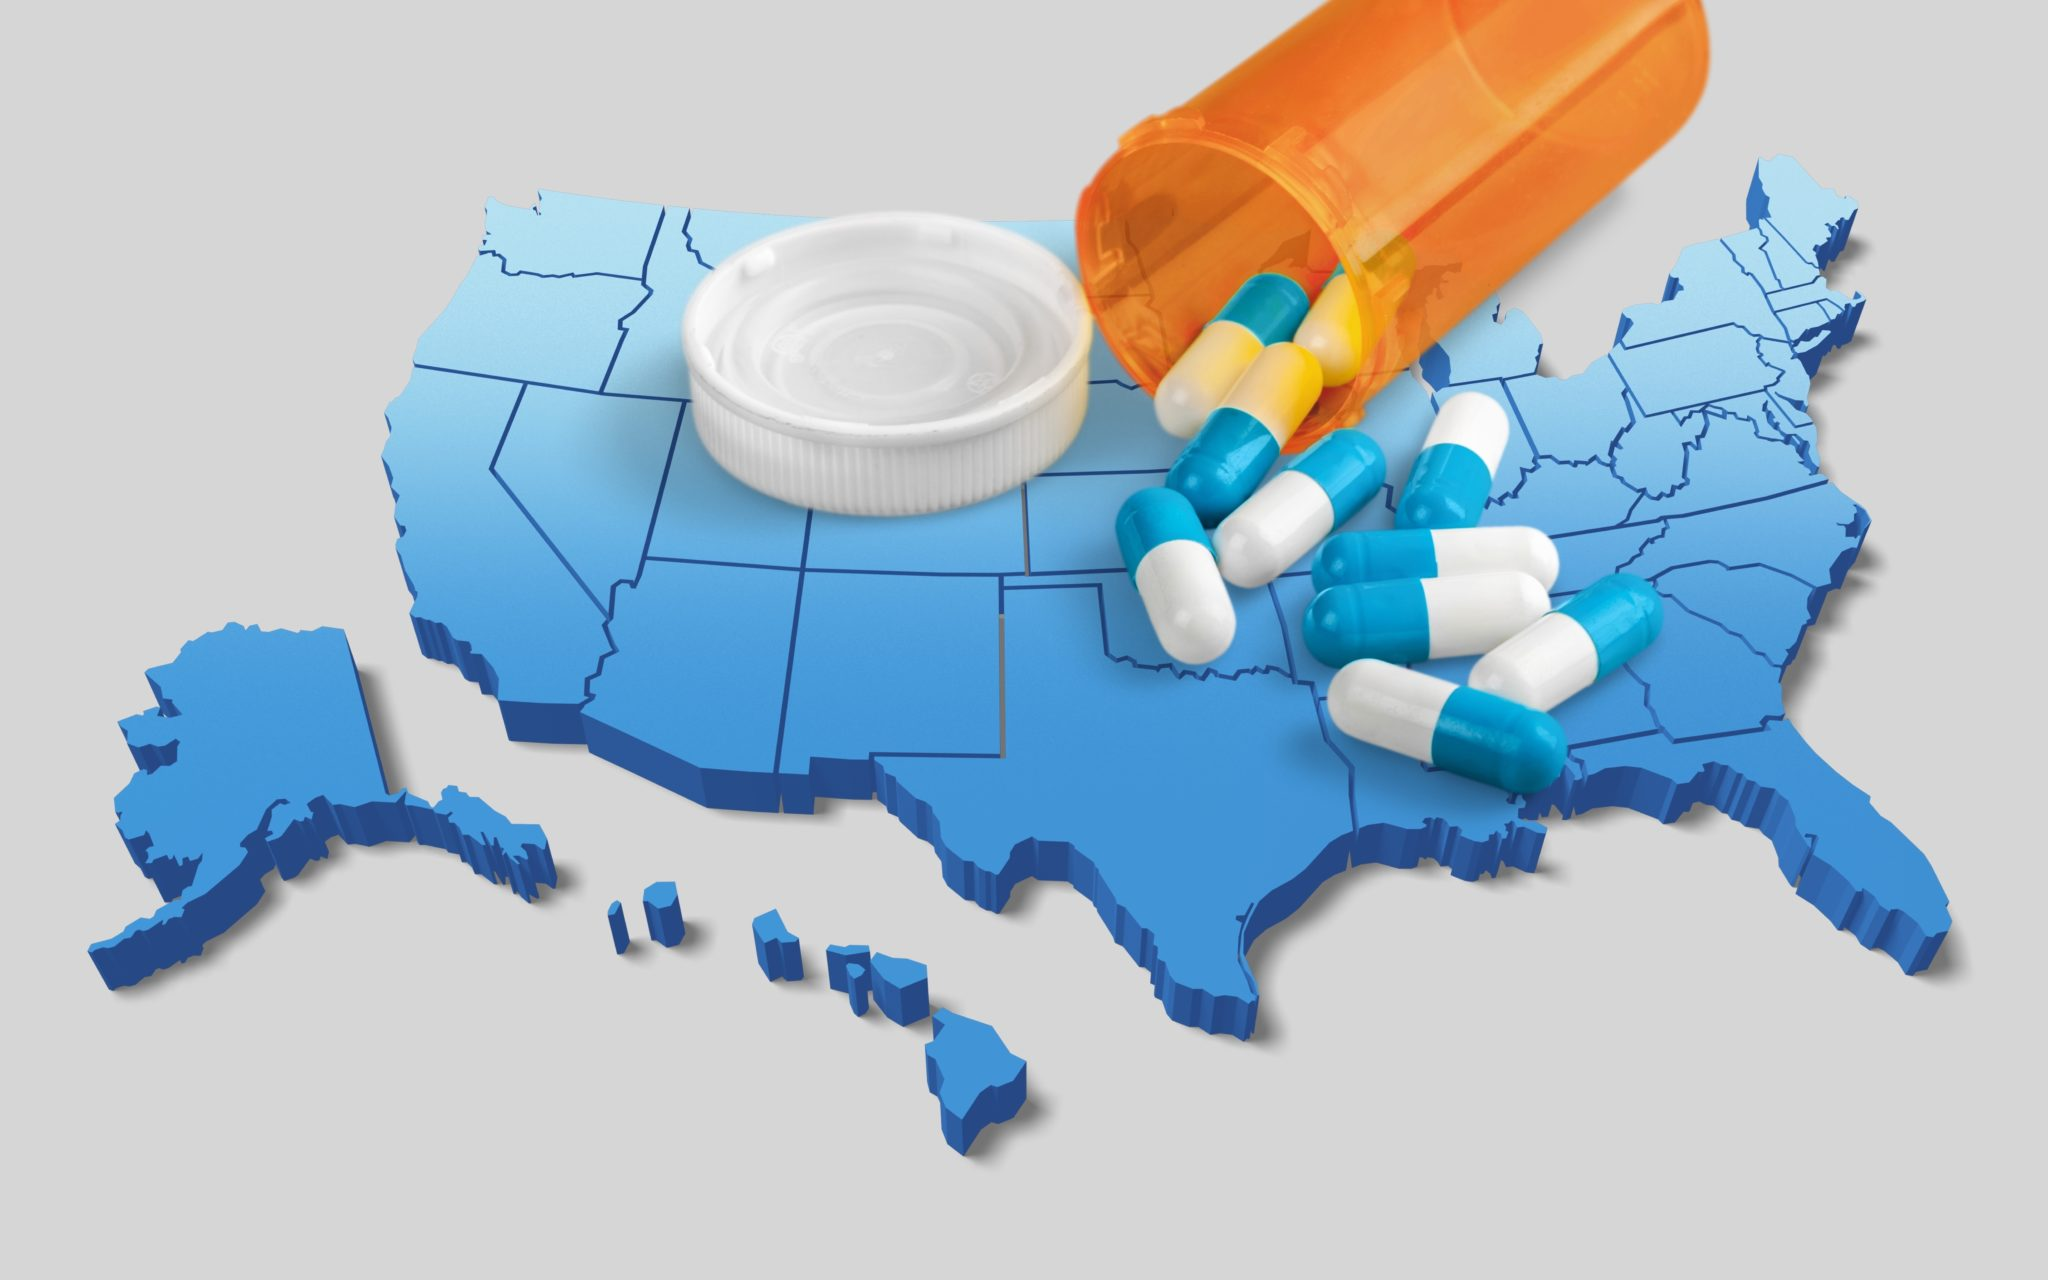 opioid abuse epidemic